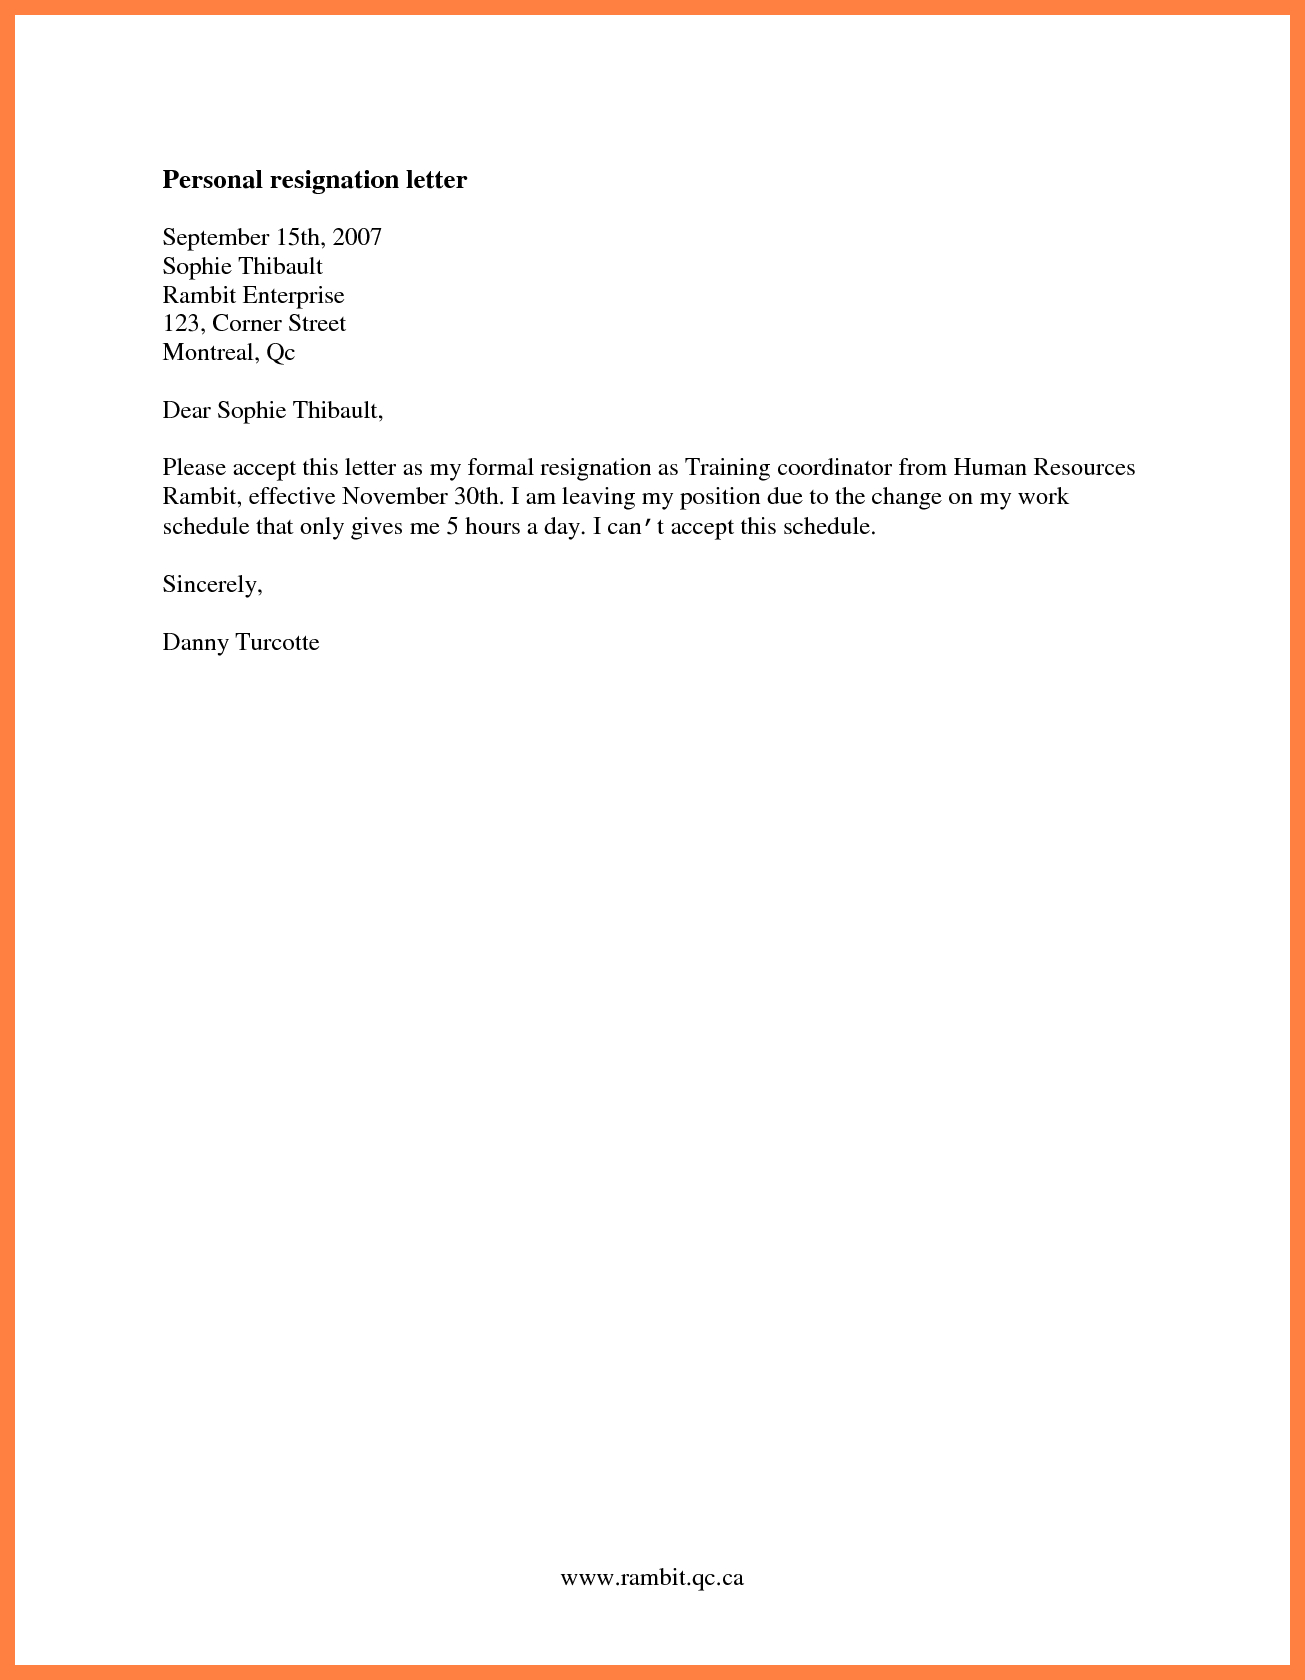 Basic Resignation Letter Template - Simple Letter Resignation Tire Driveeasy Co Resign Example